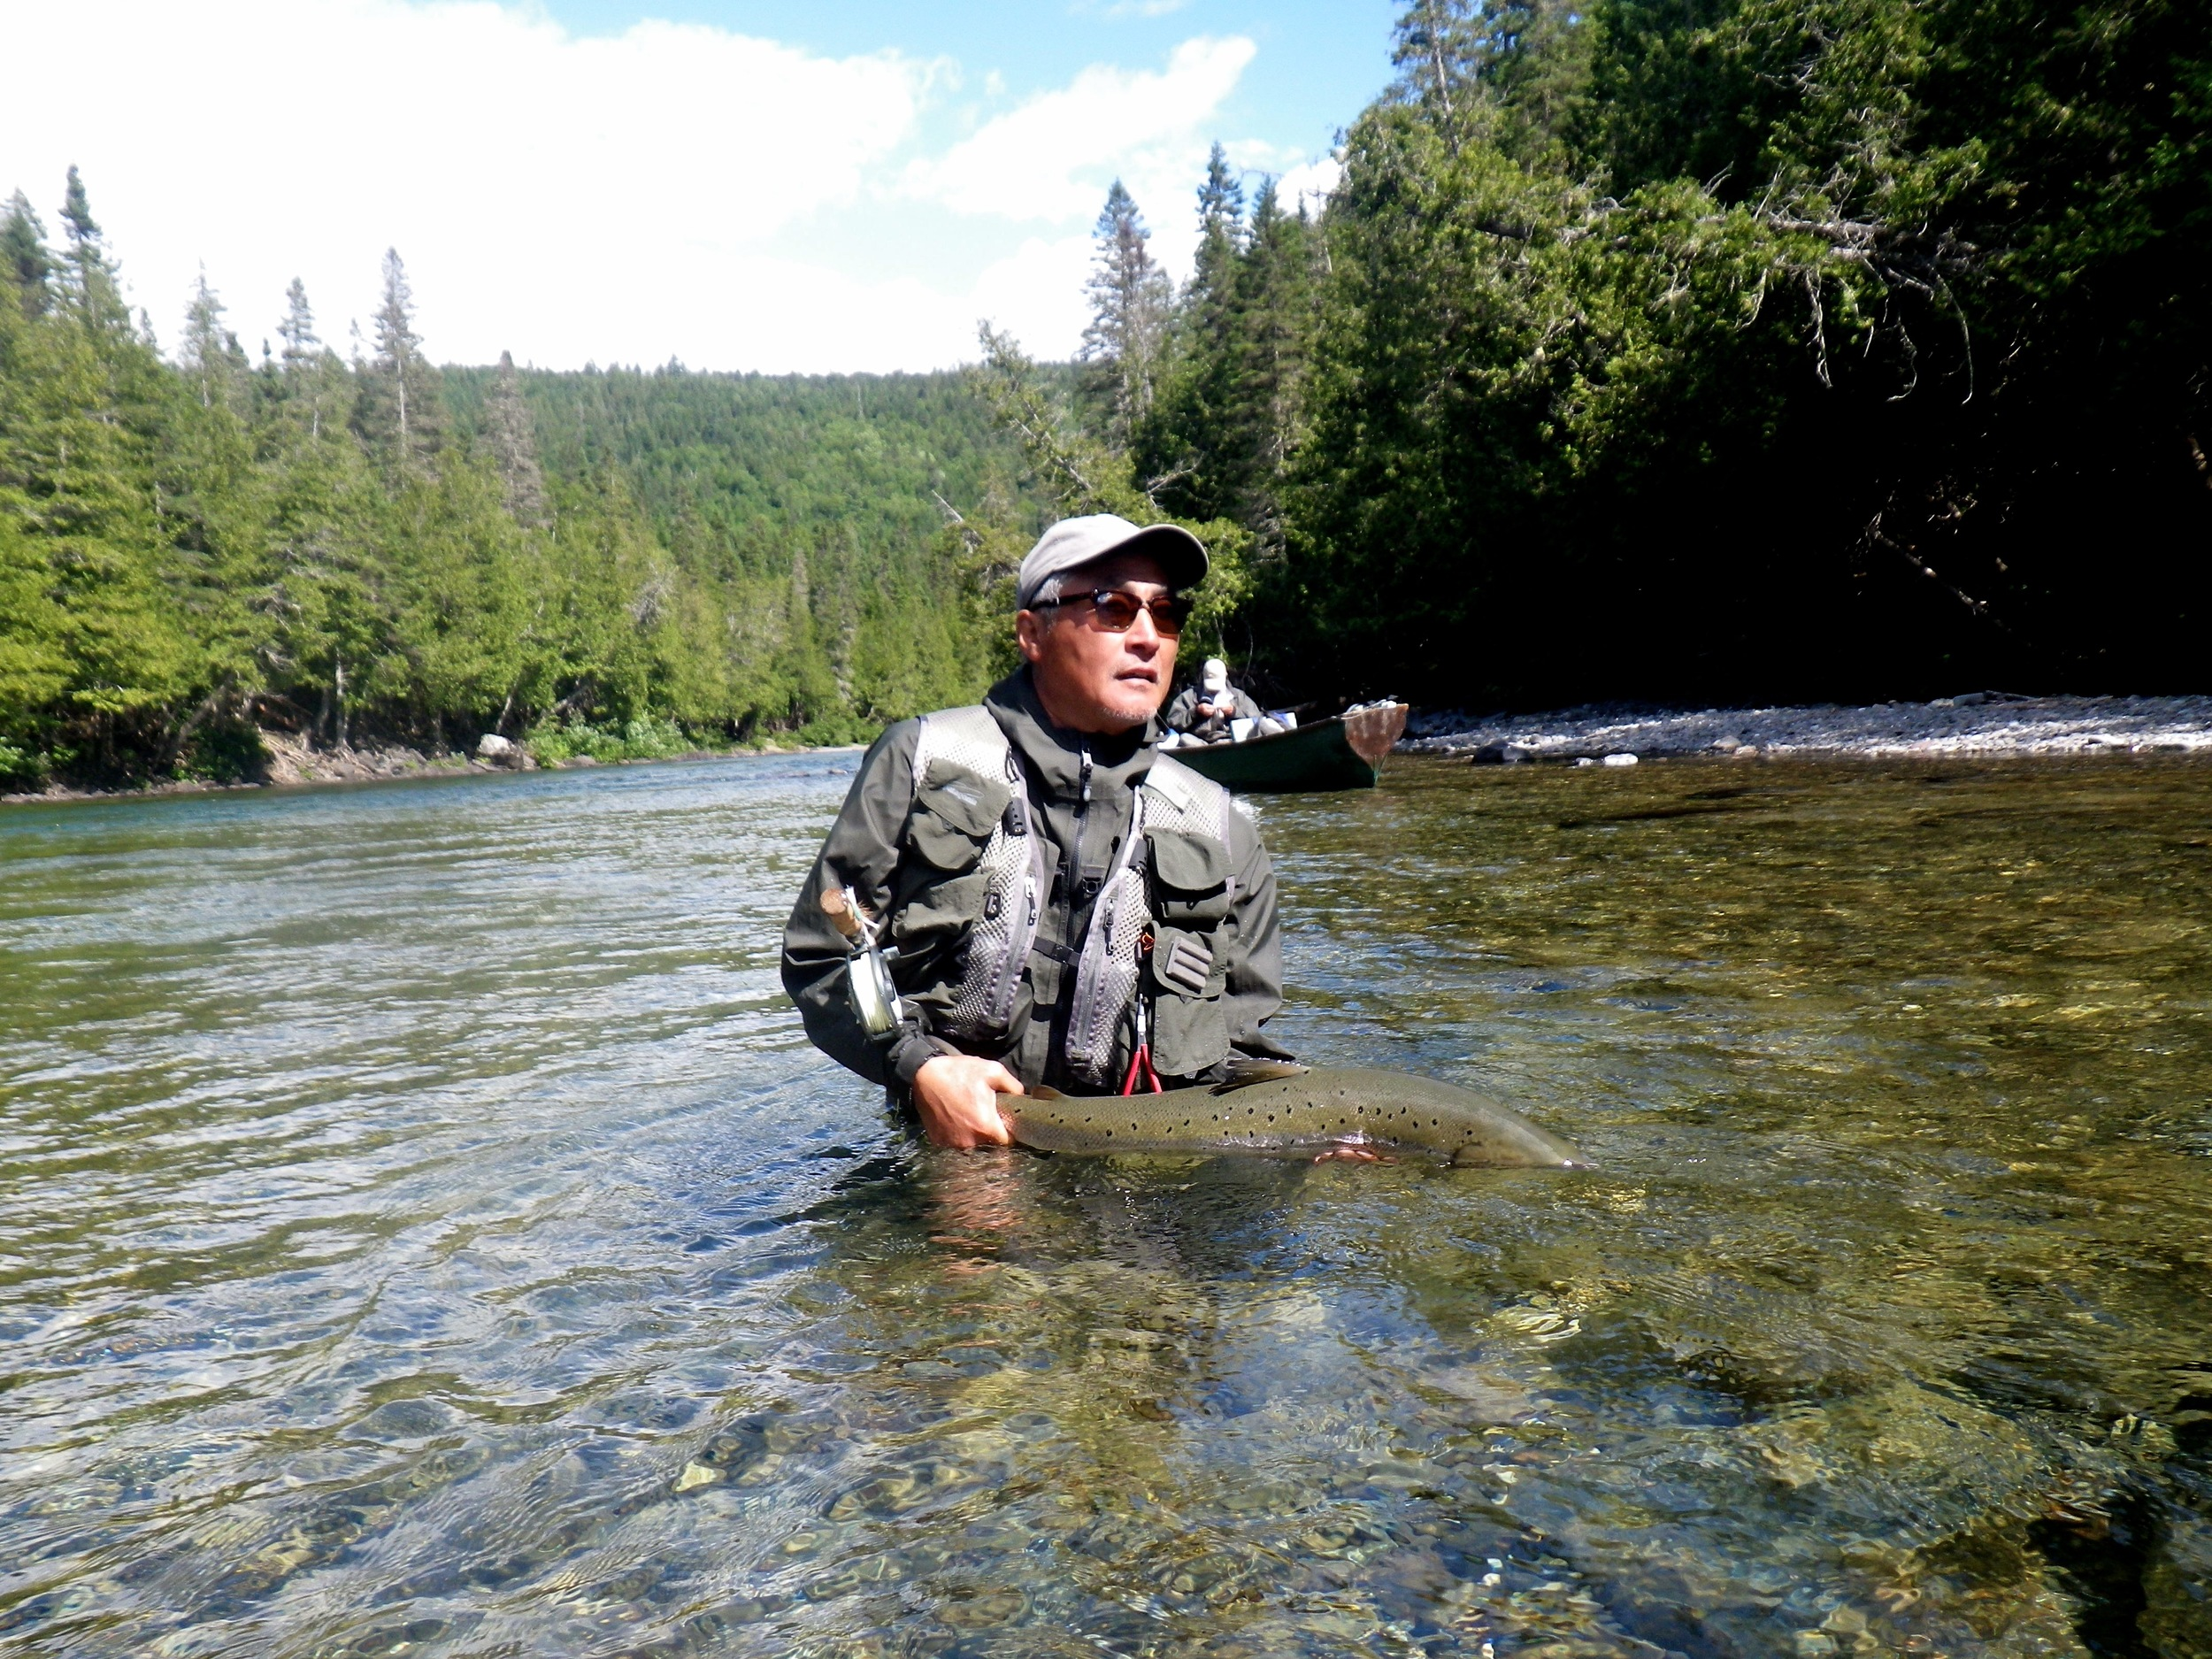 Long time Camp Bonaventure guest Rick Koeknow how to get it done, Congratulations Rick!